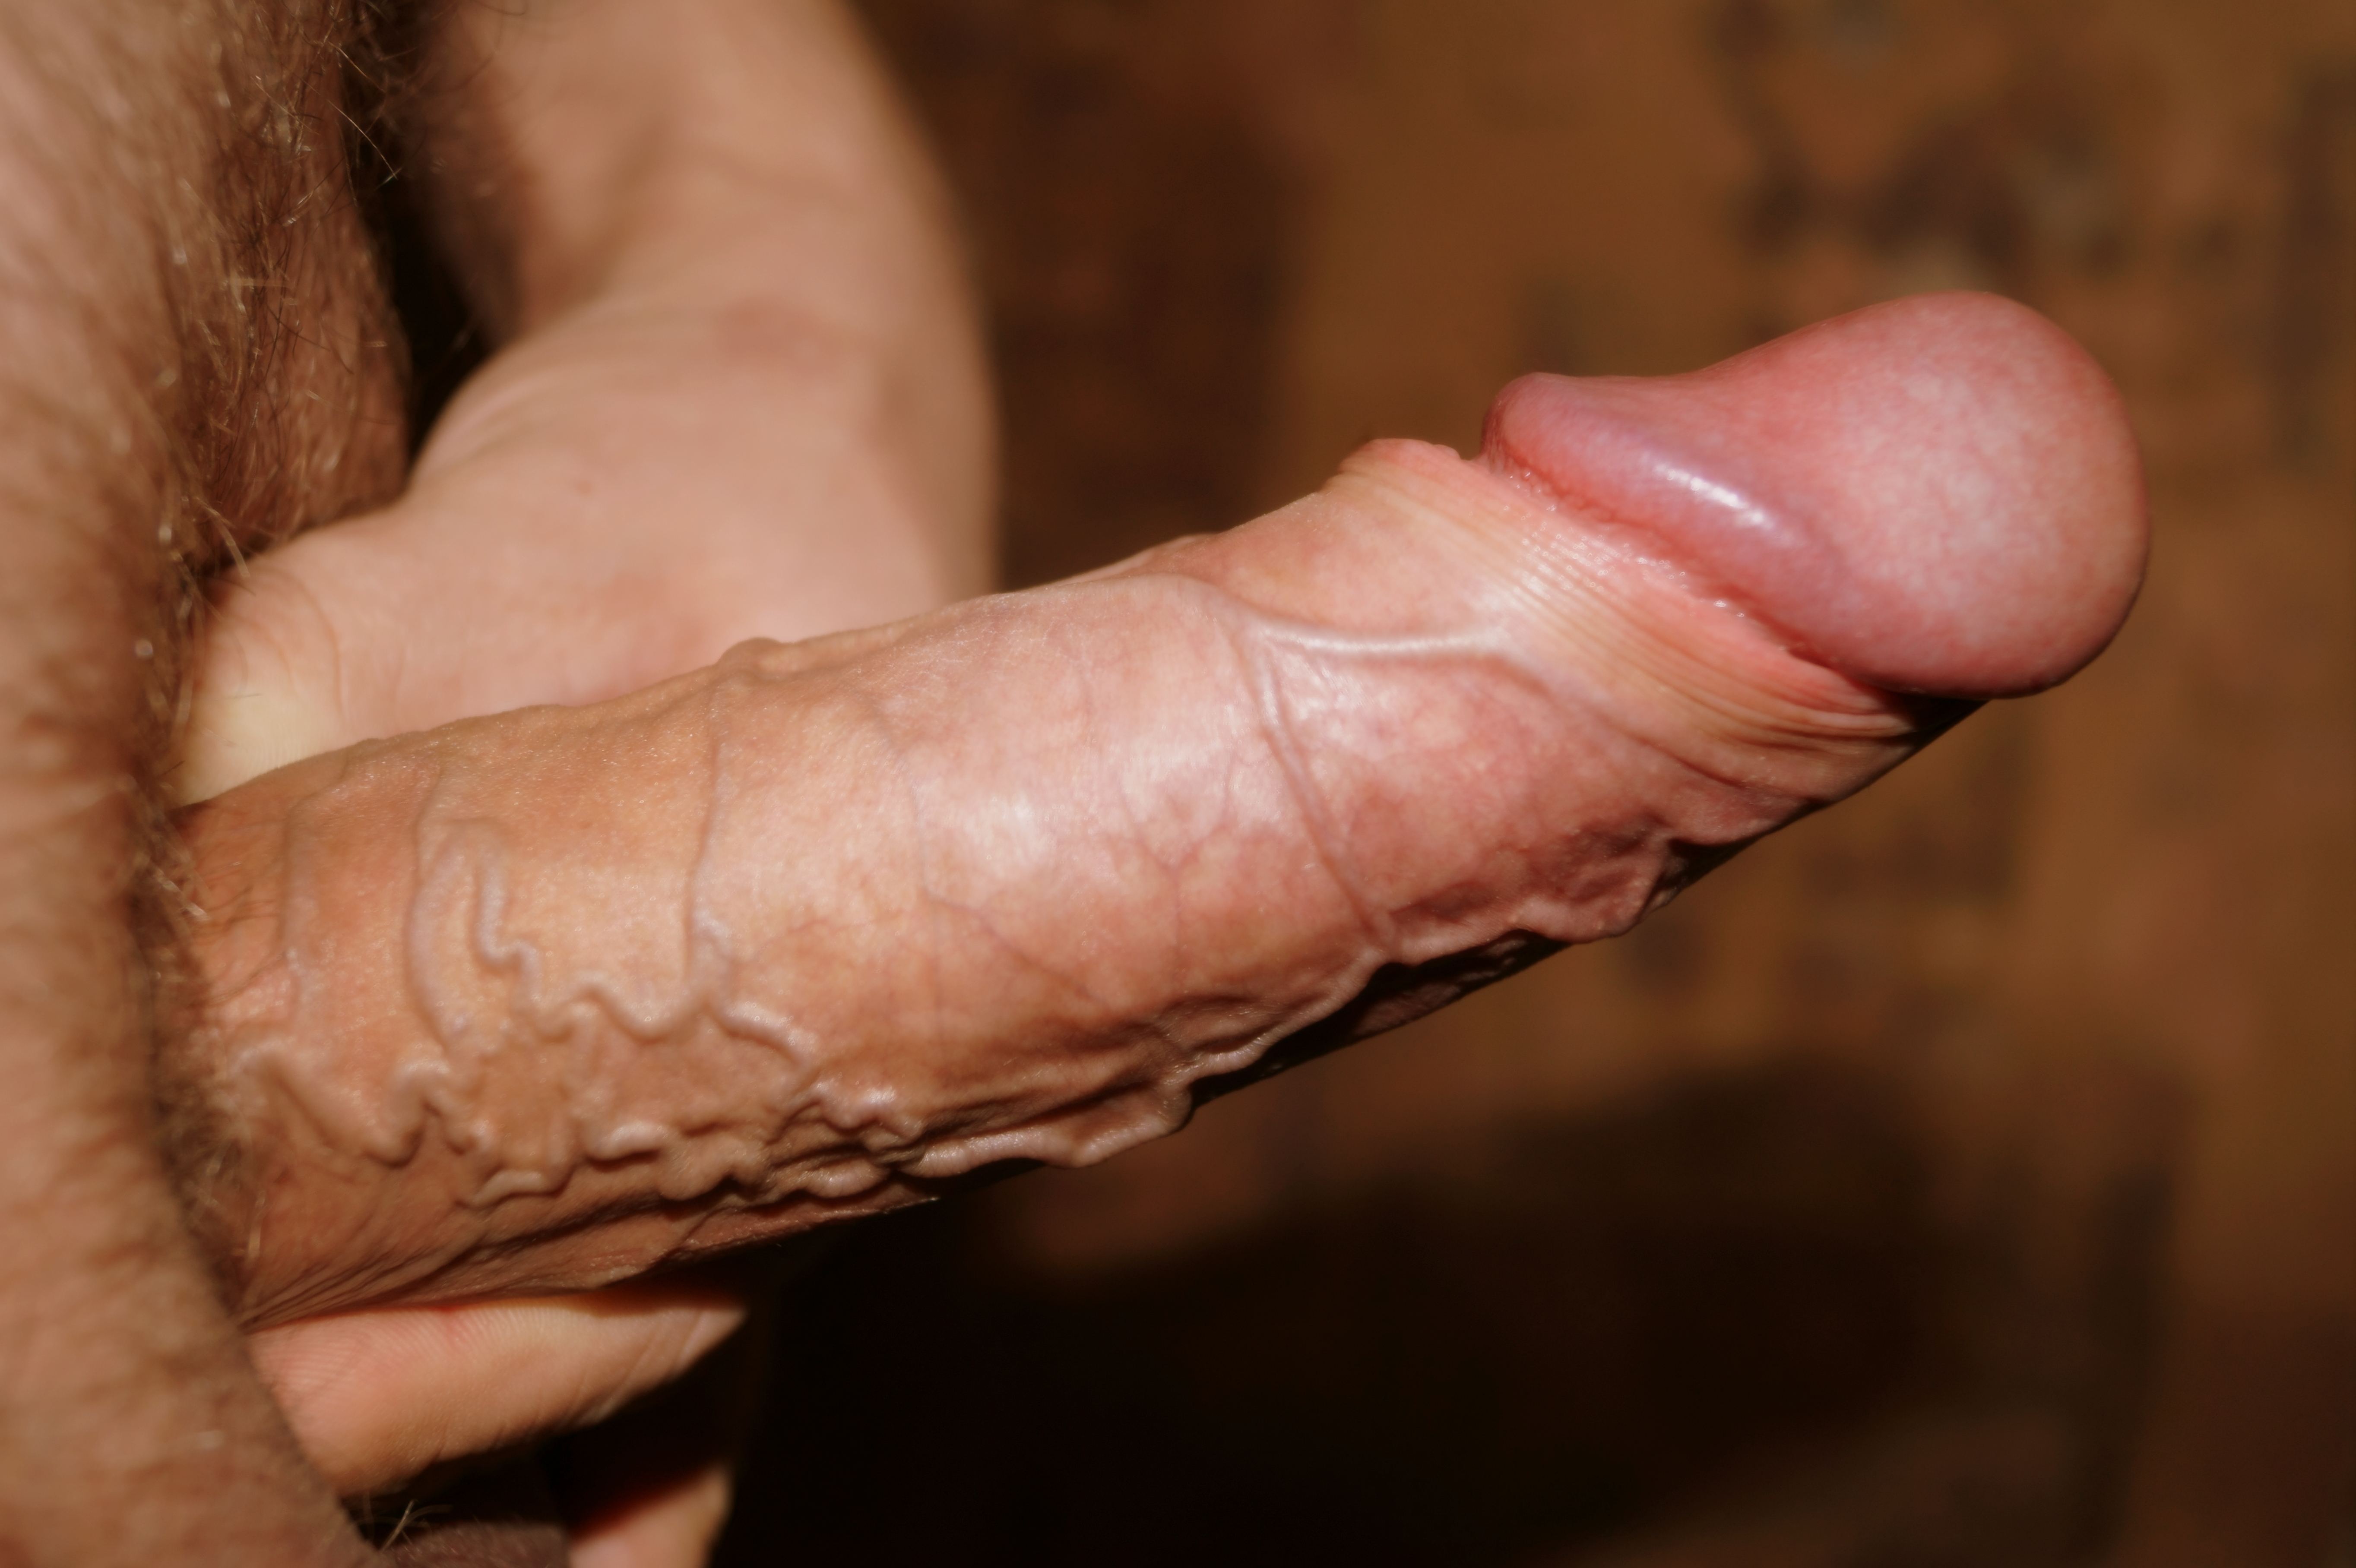 Pic porn dick Hottest shemale